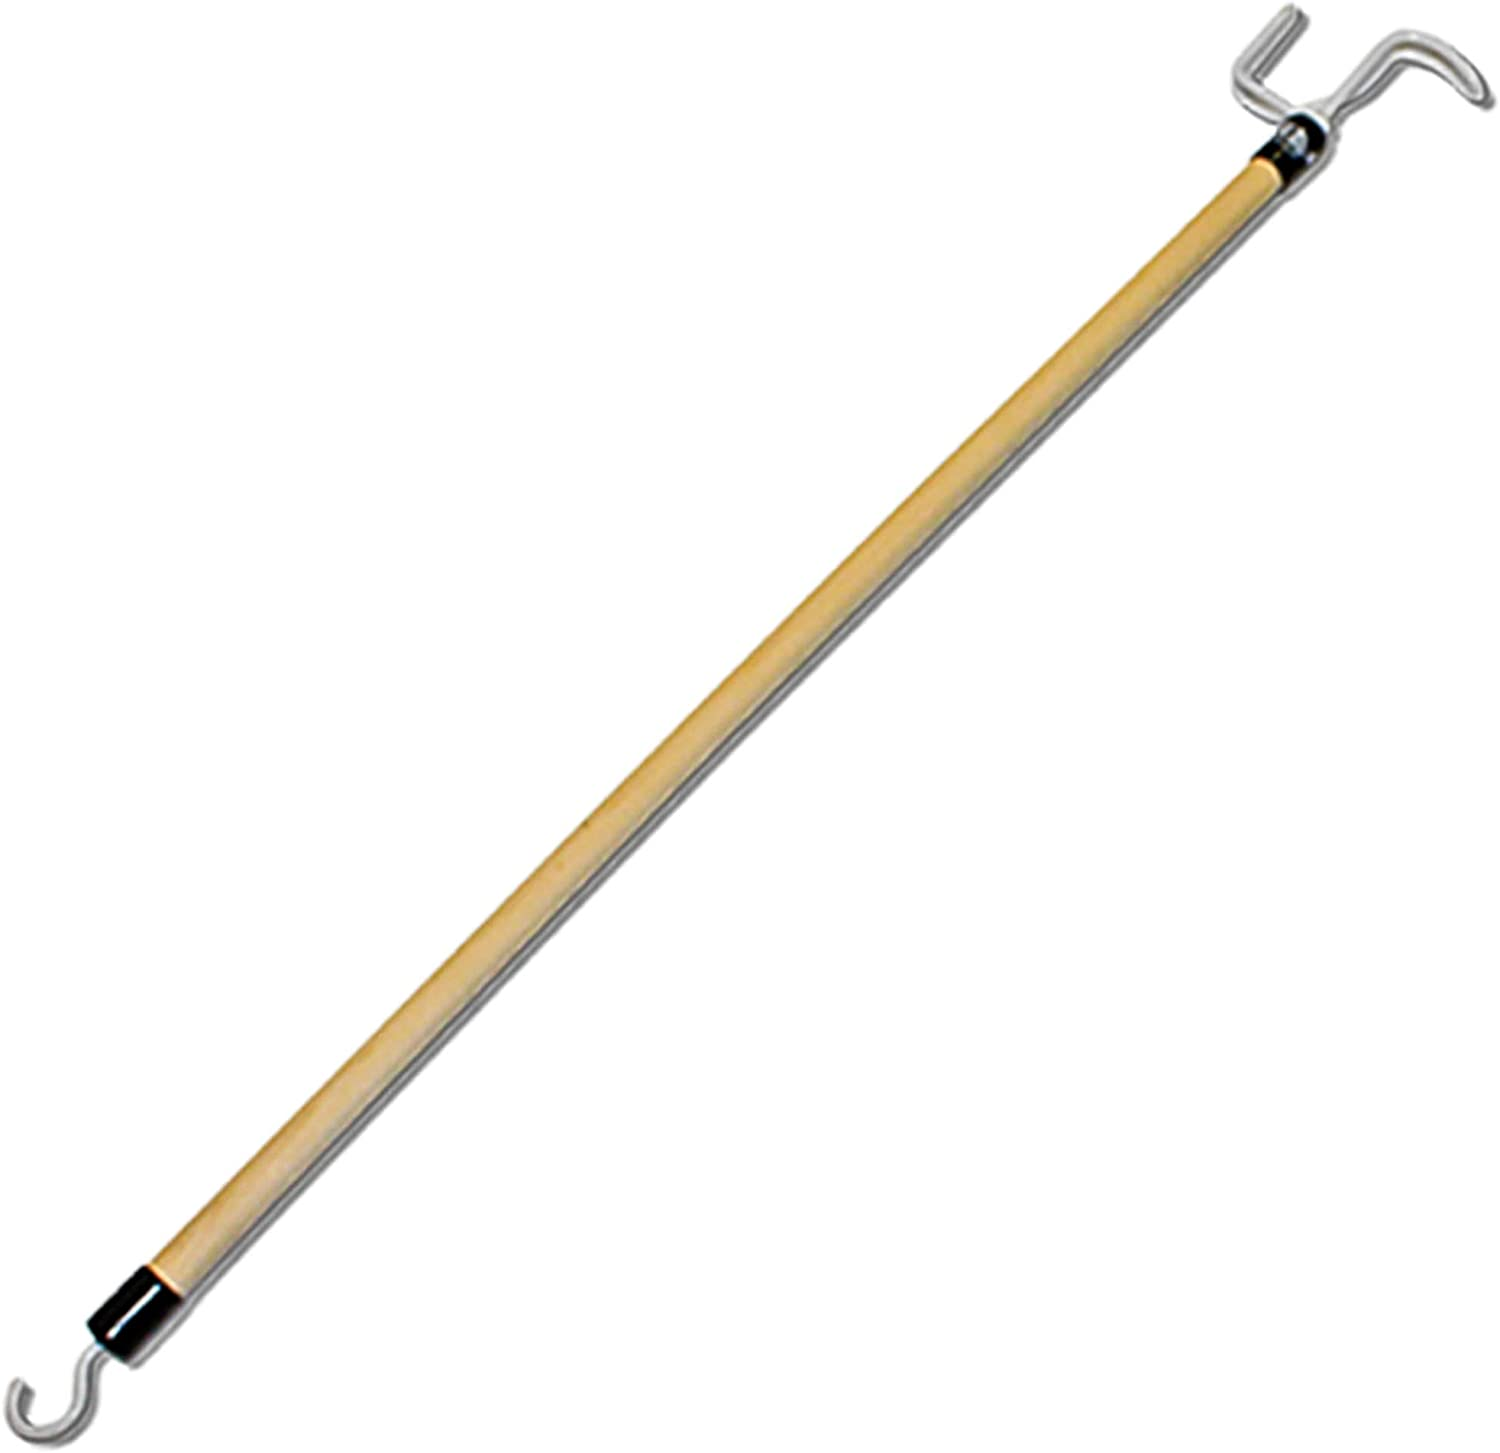 RMS Deluxe 28 Inches Long Dressing Stick - Dressing Aid for Shoes, Socks, Shirts and Pants